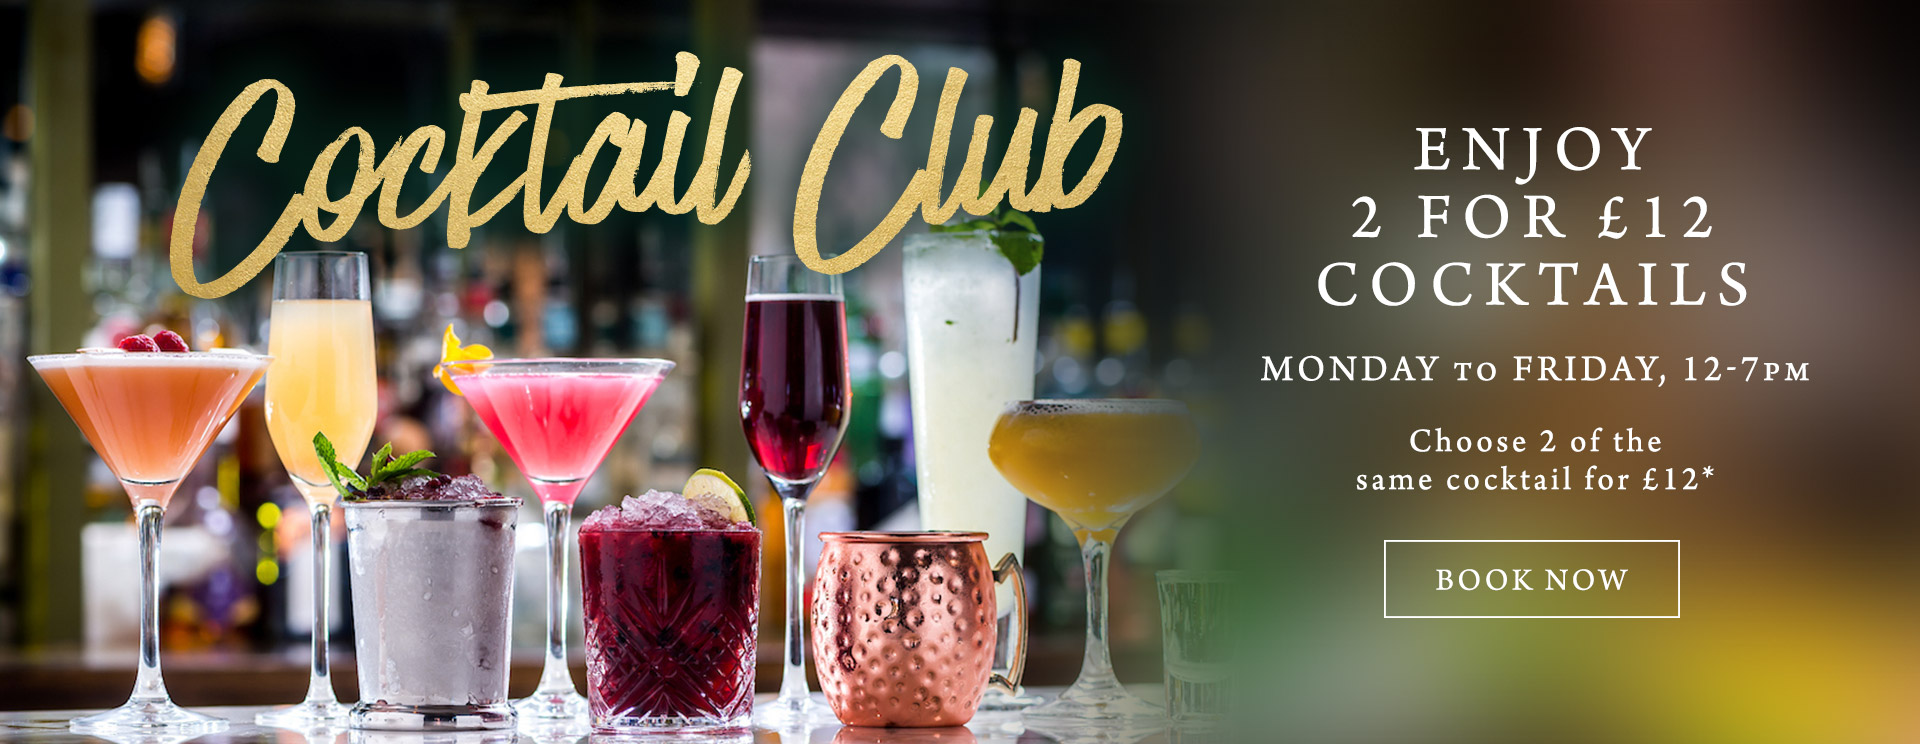 2 for £12 cocktails at The Green House